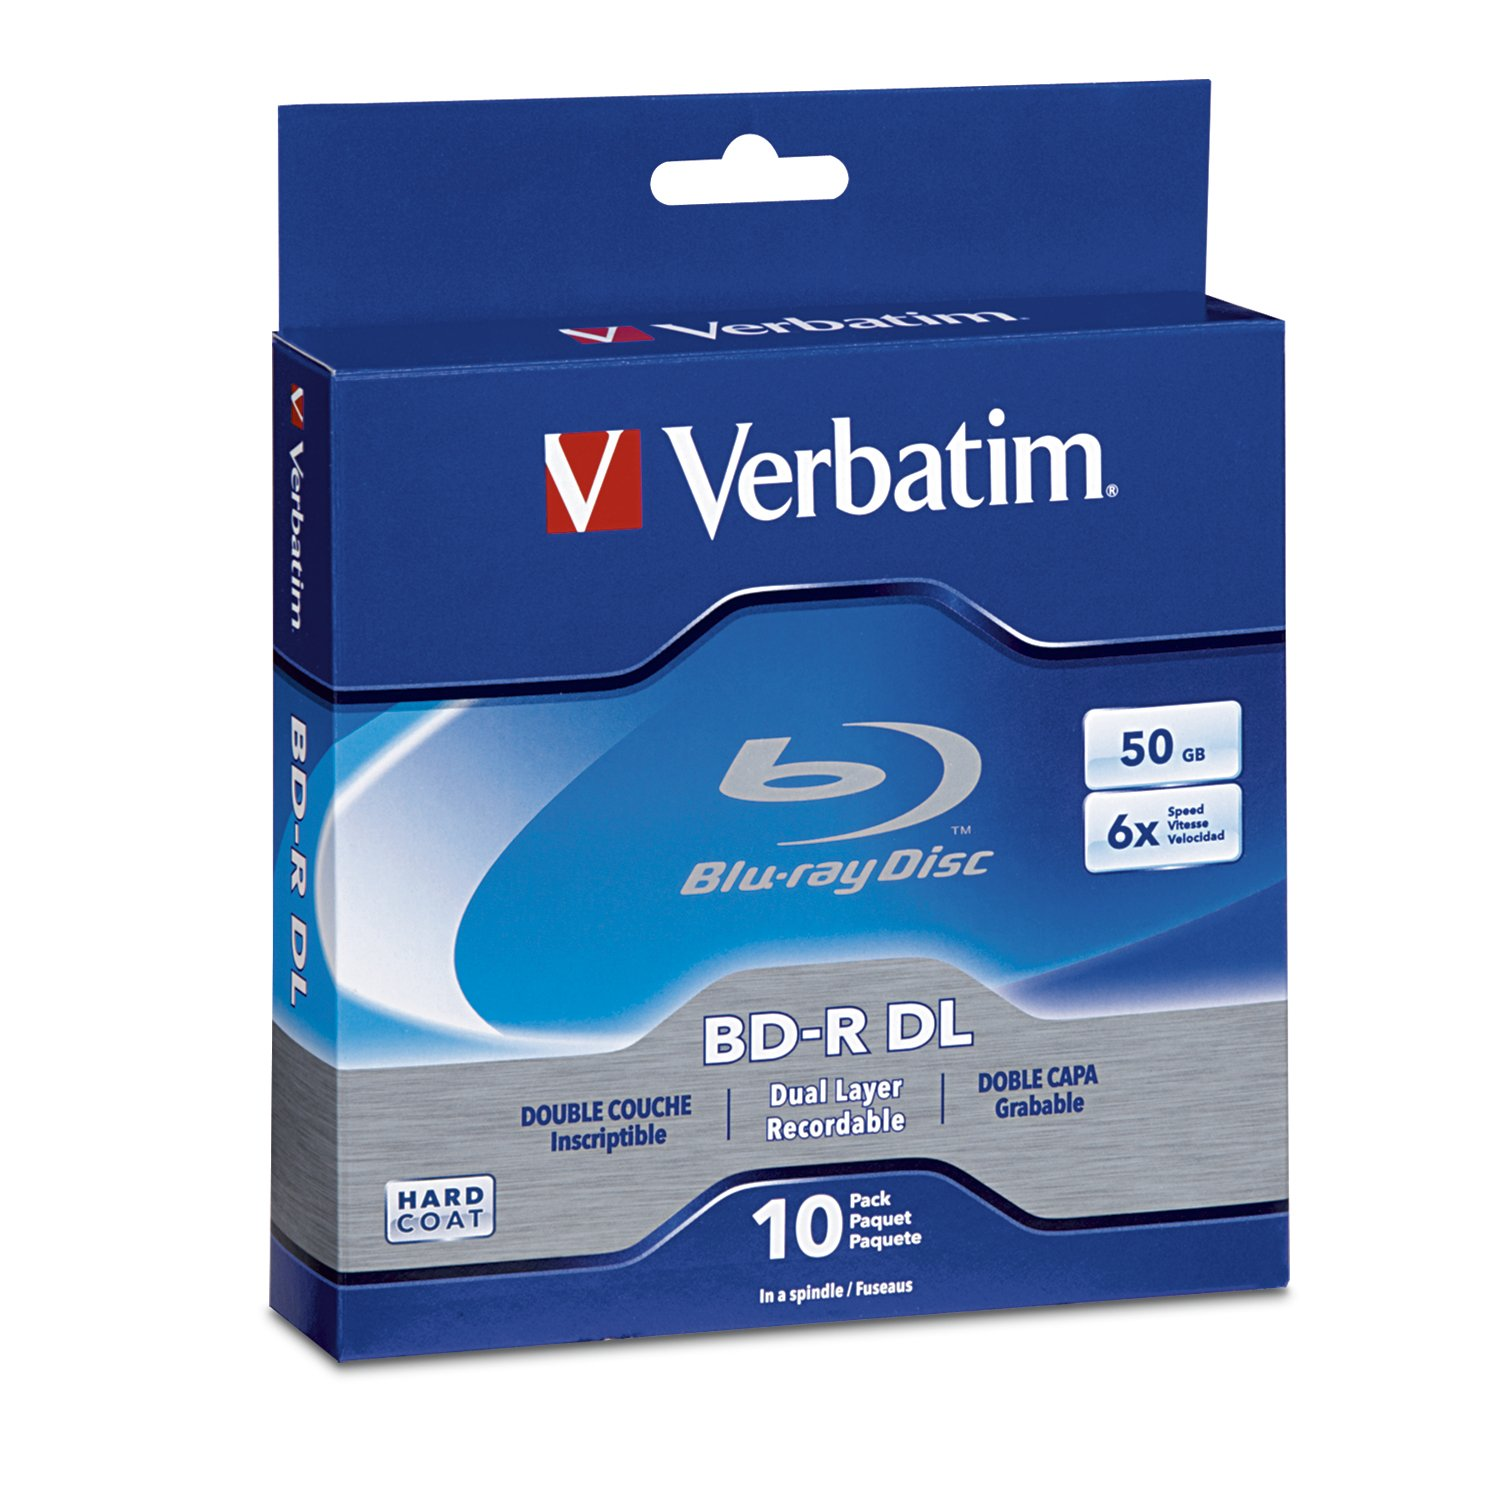 Verbatim BD-R 50GB 6X Blu-ray Recordable Media Disc - 10 Pack Spindle VERBATIM CORPORATION 97335 Blank Media & Cleaning Cartridges